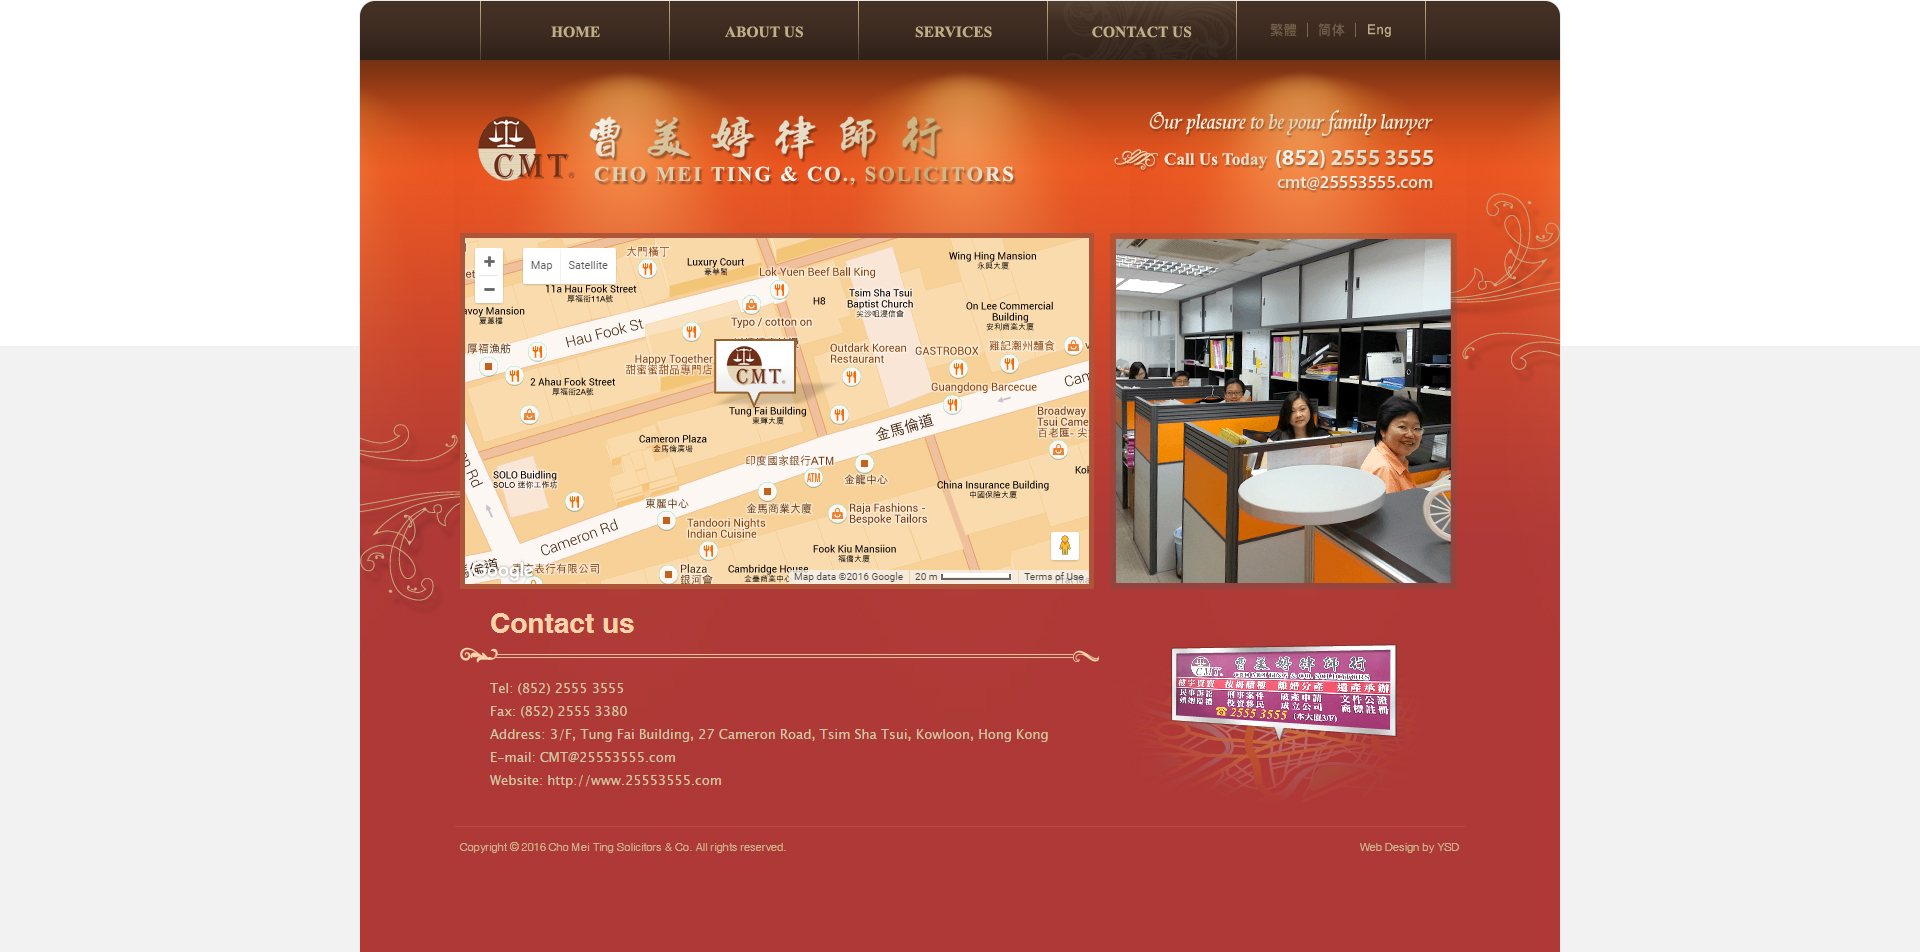 Cho Mei Ting Solicitors & Co.